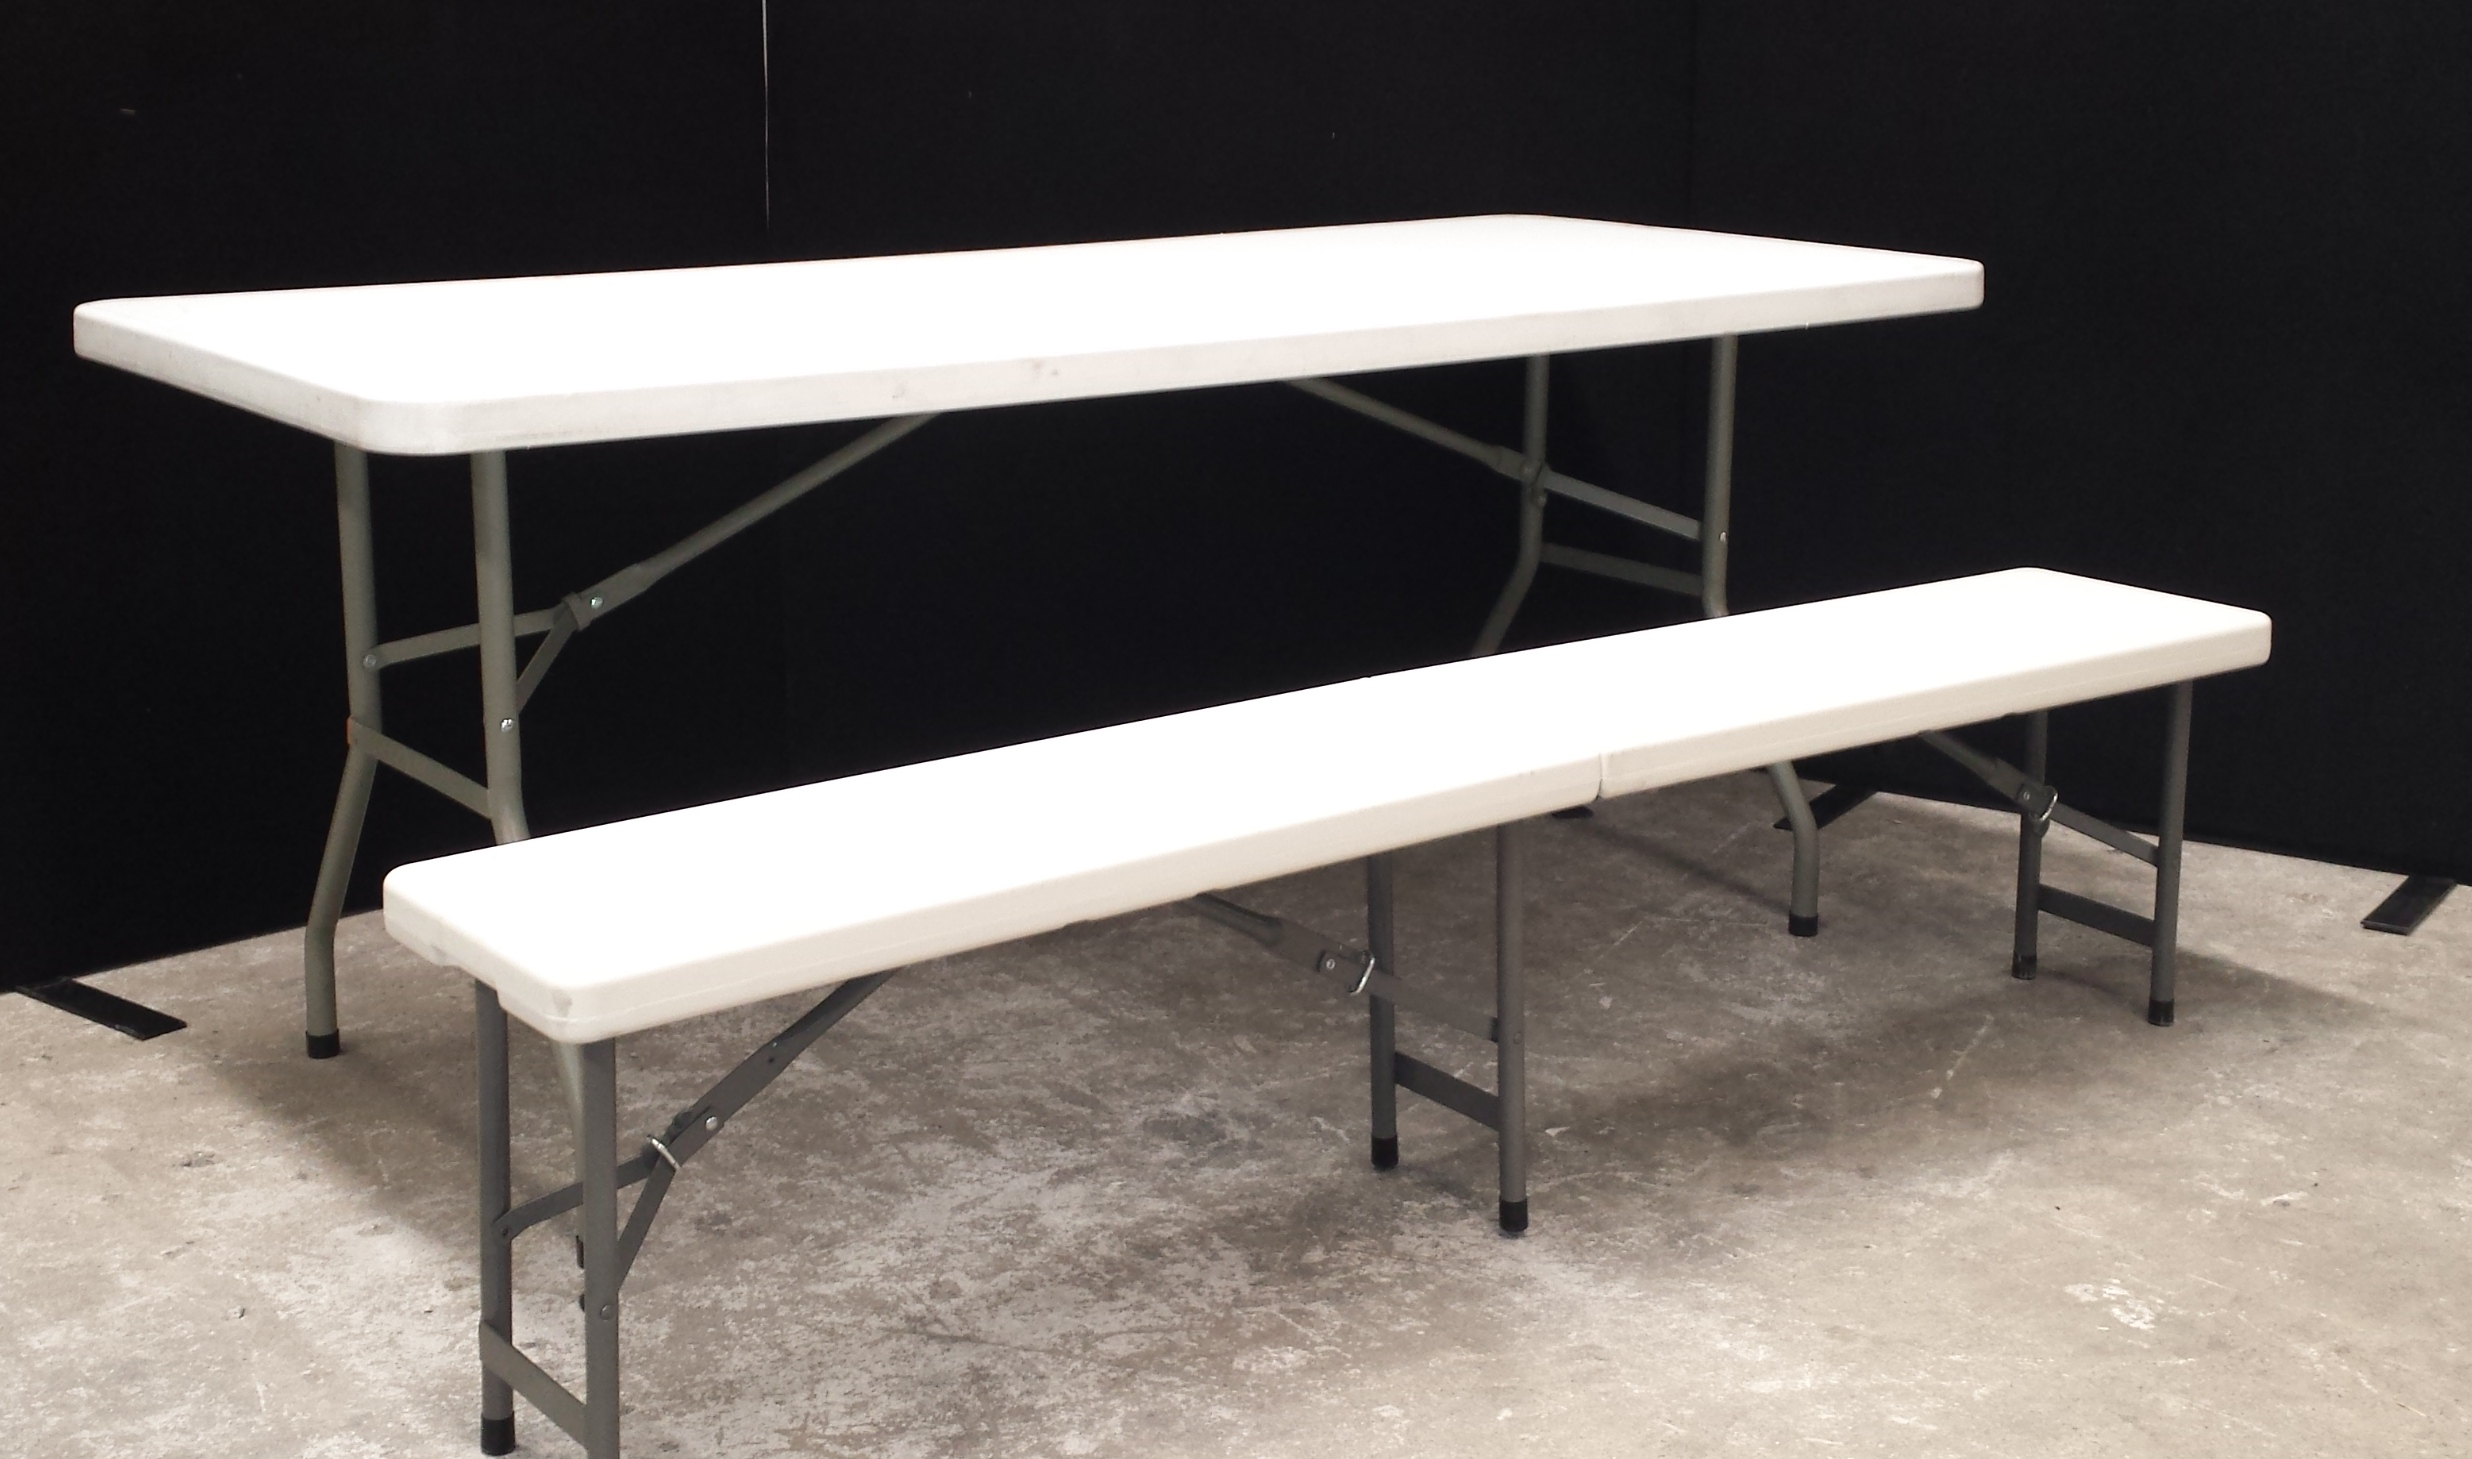 1 8m Portable Bench Seat Folding Tables And Chairs